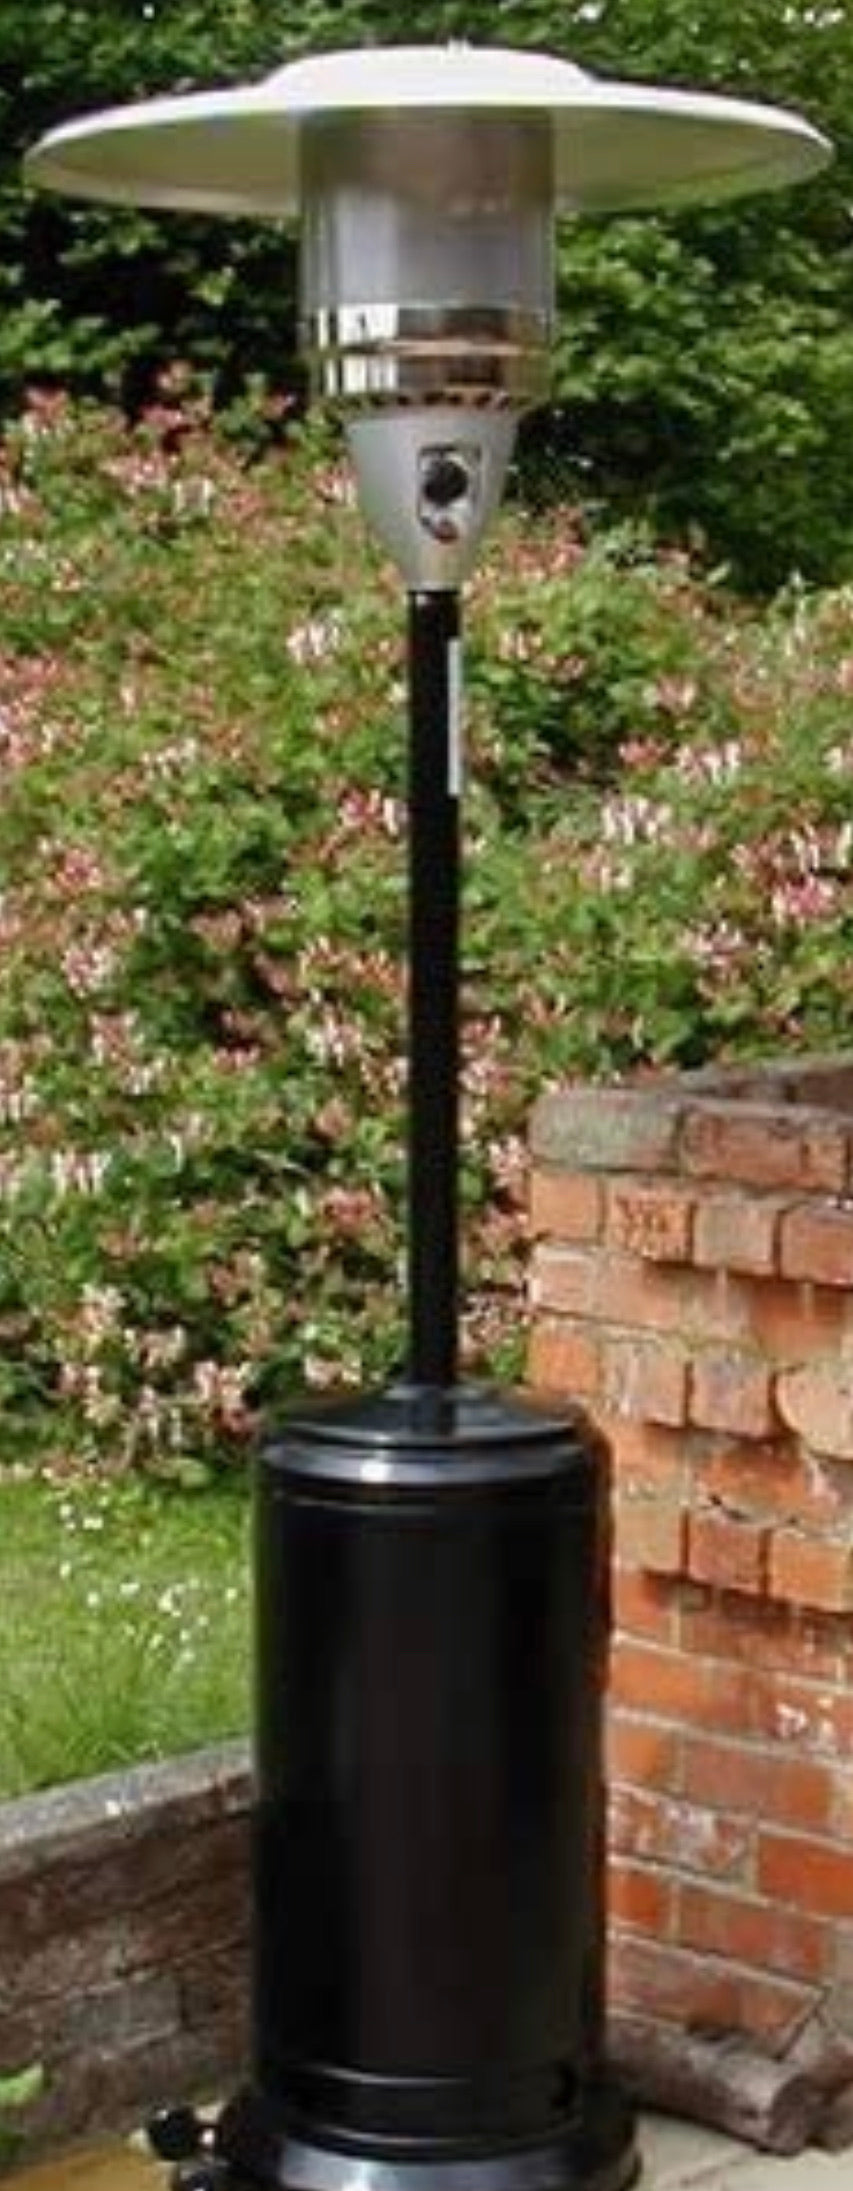 Gas Patio Heater - FREE Regulator & Hose, Wheel kit - Cover and ground anchors* - Black powder coated finish*